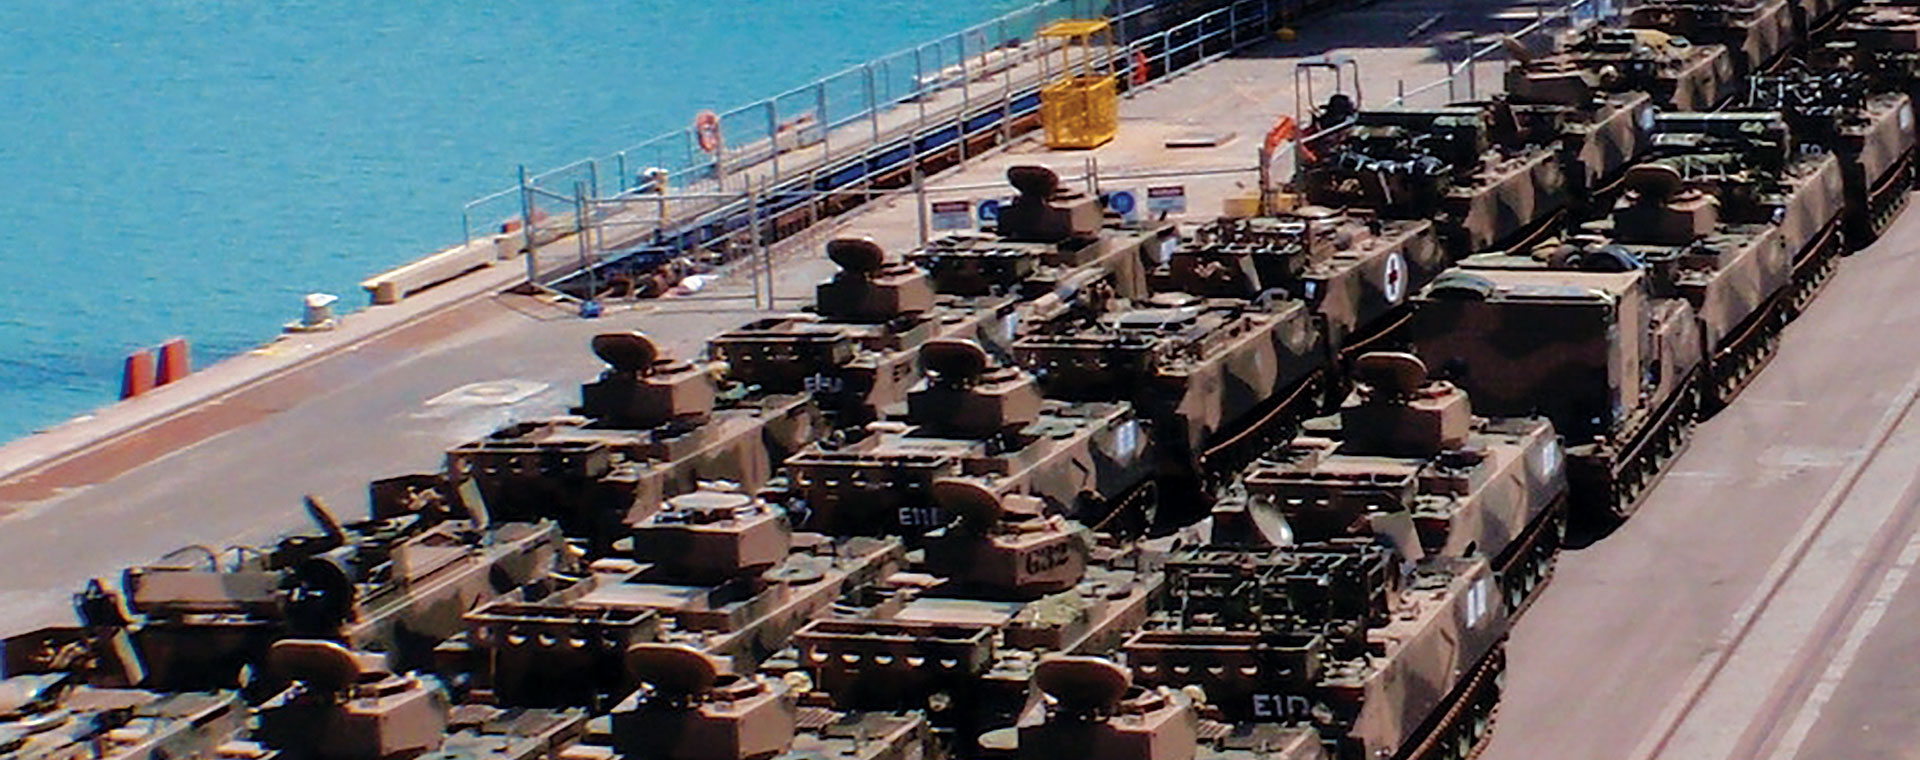 Army tanks on the wharf